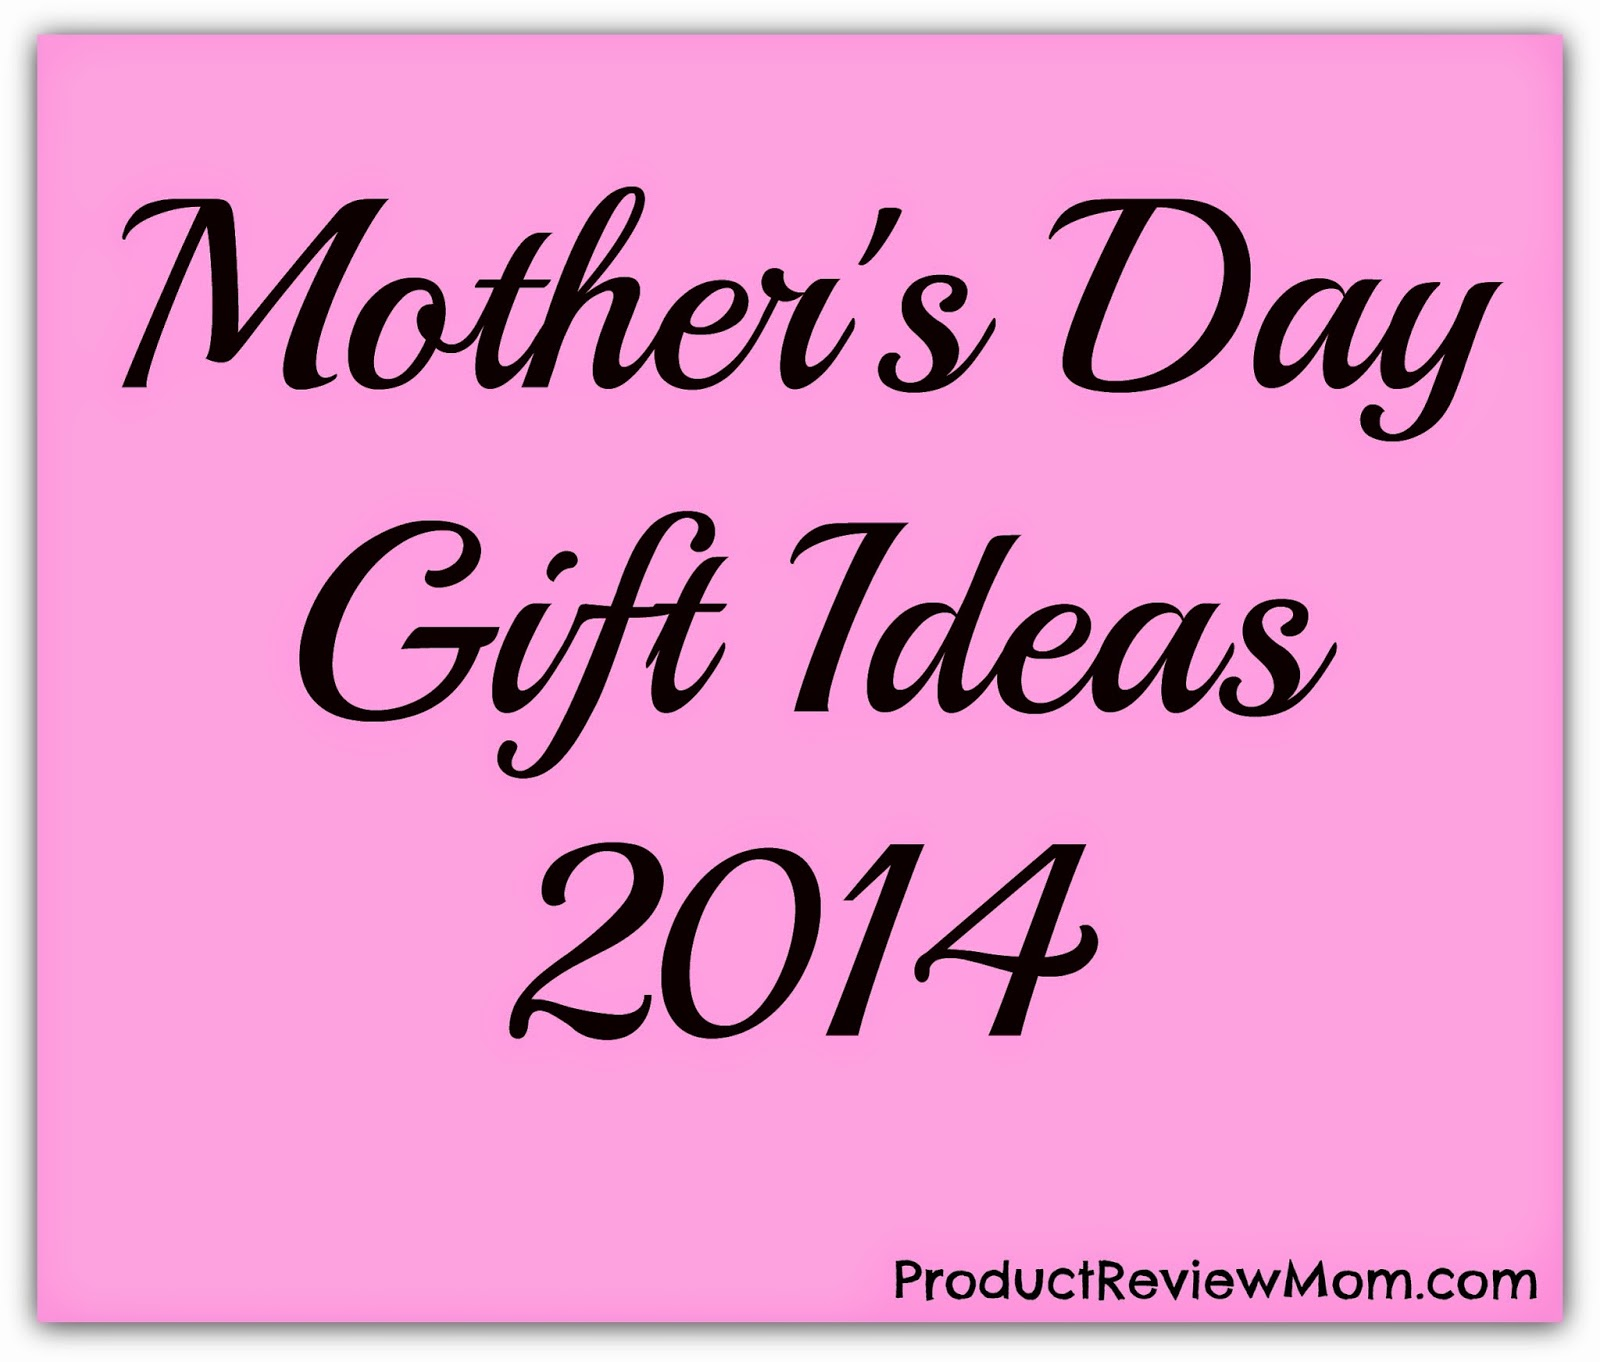 Mother's Day Gift Ideas 2014 via ProductReviewMom.com